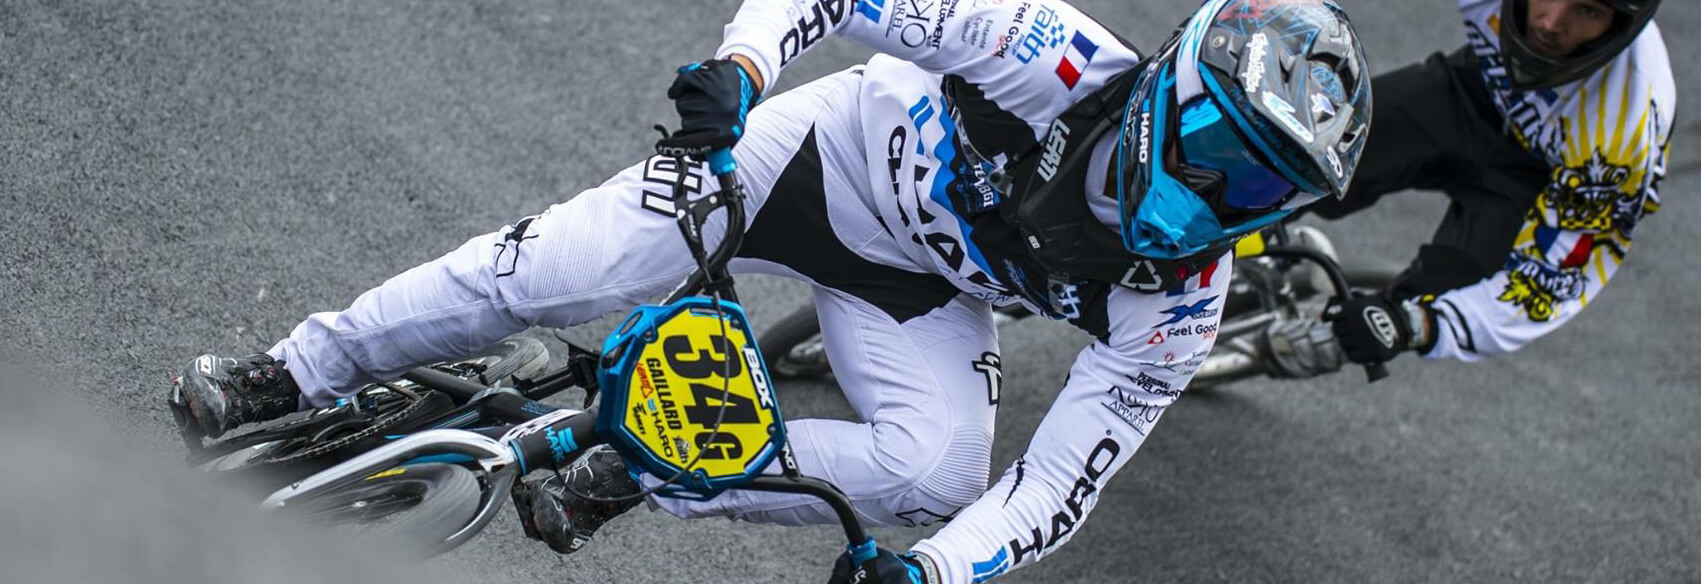 Charly Gaillard Fifteen BMX - Photo by Fabmx1